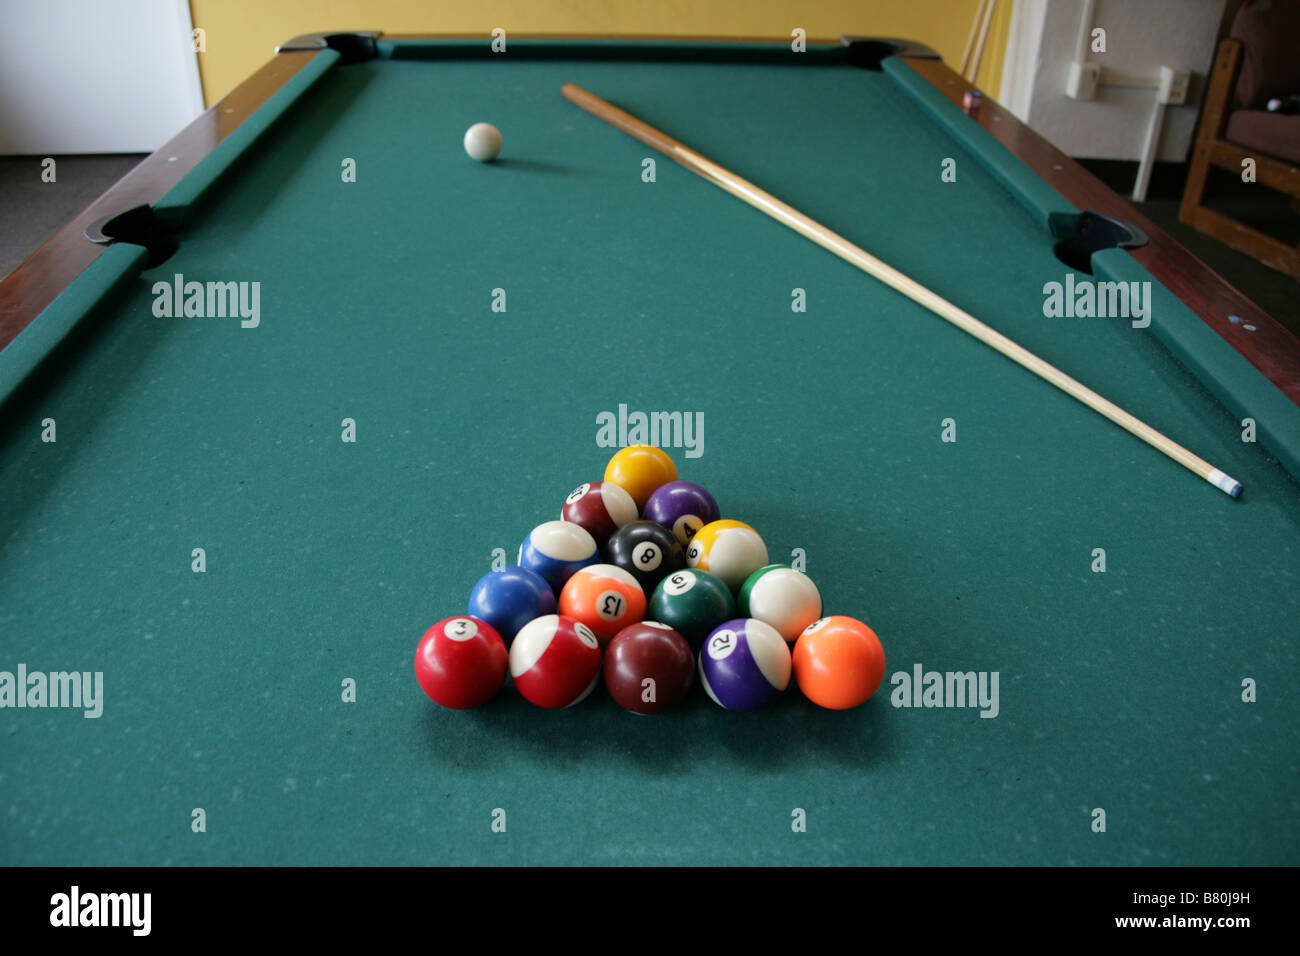 Pool Table Setup For A Game Stock Photo Alamy - How to set up a pool table